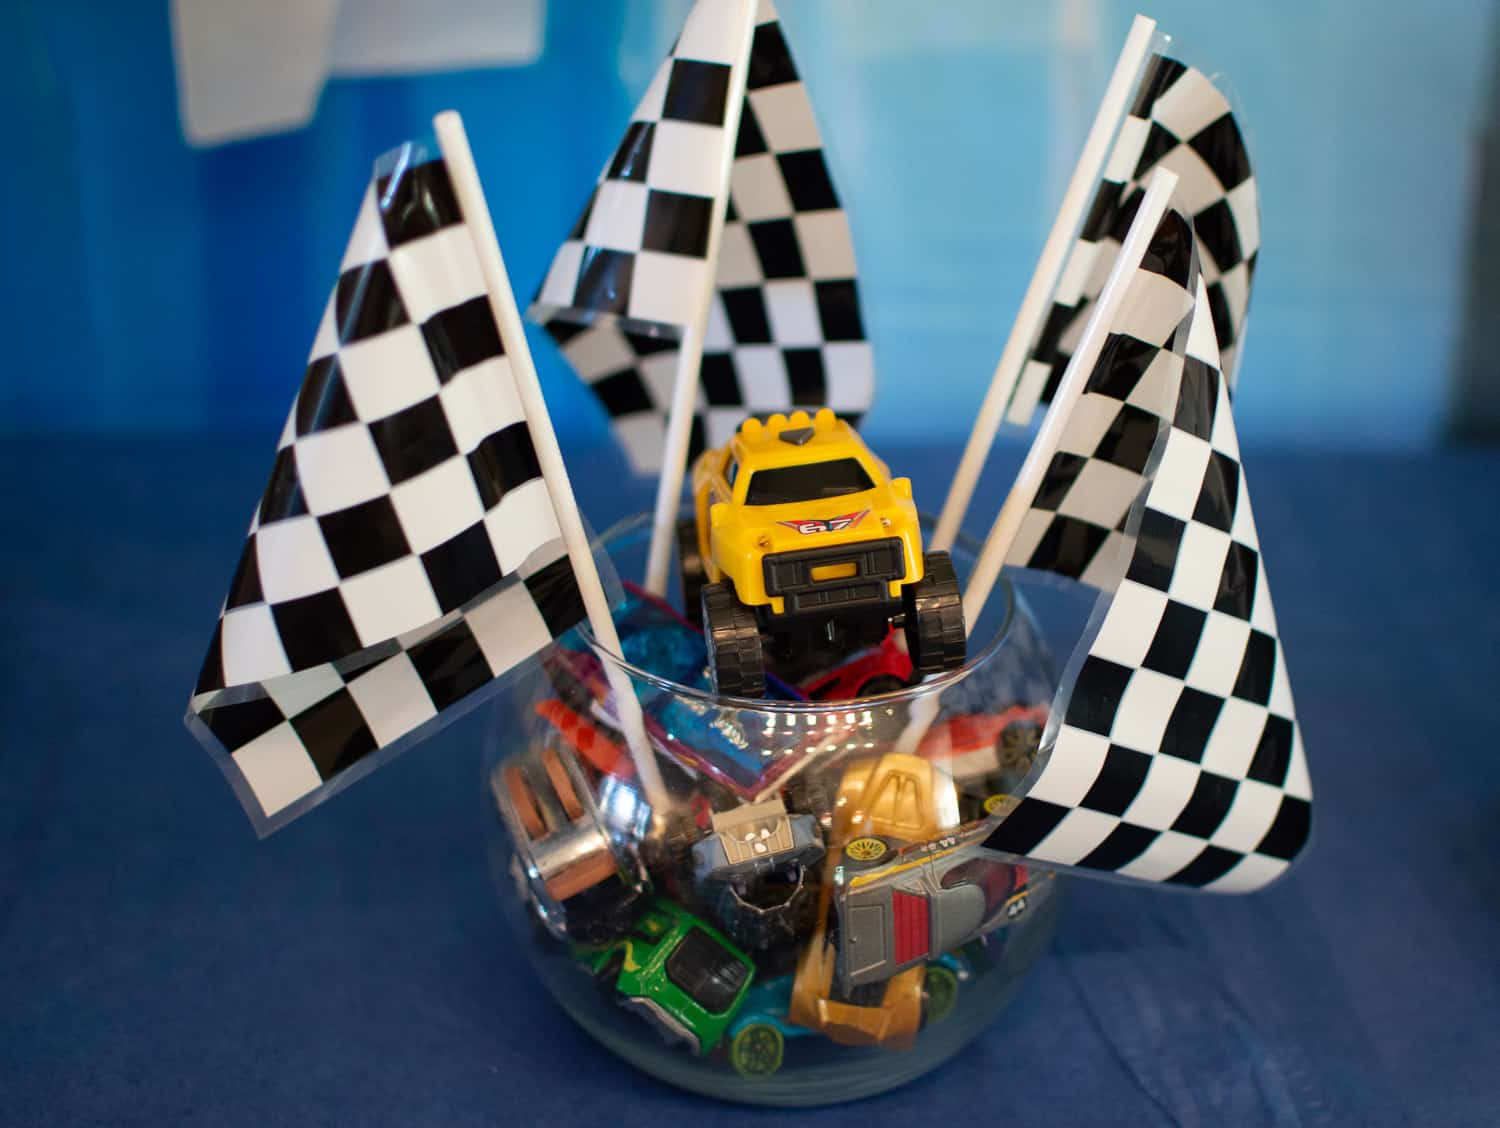 Checkered racing flag and truck centerpiece